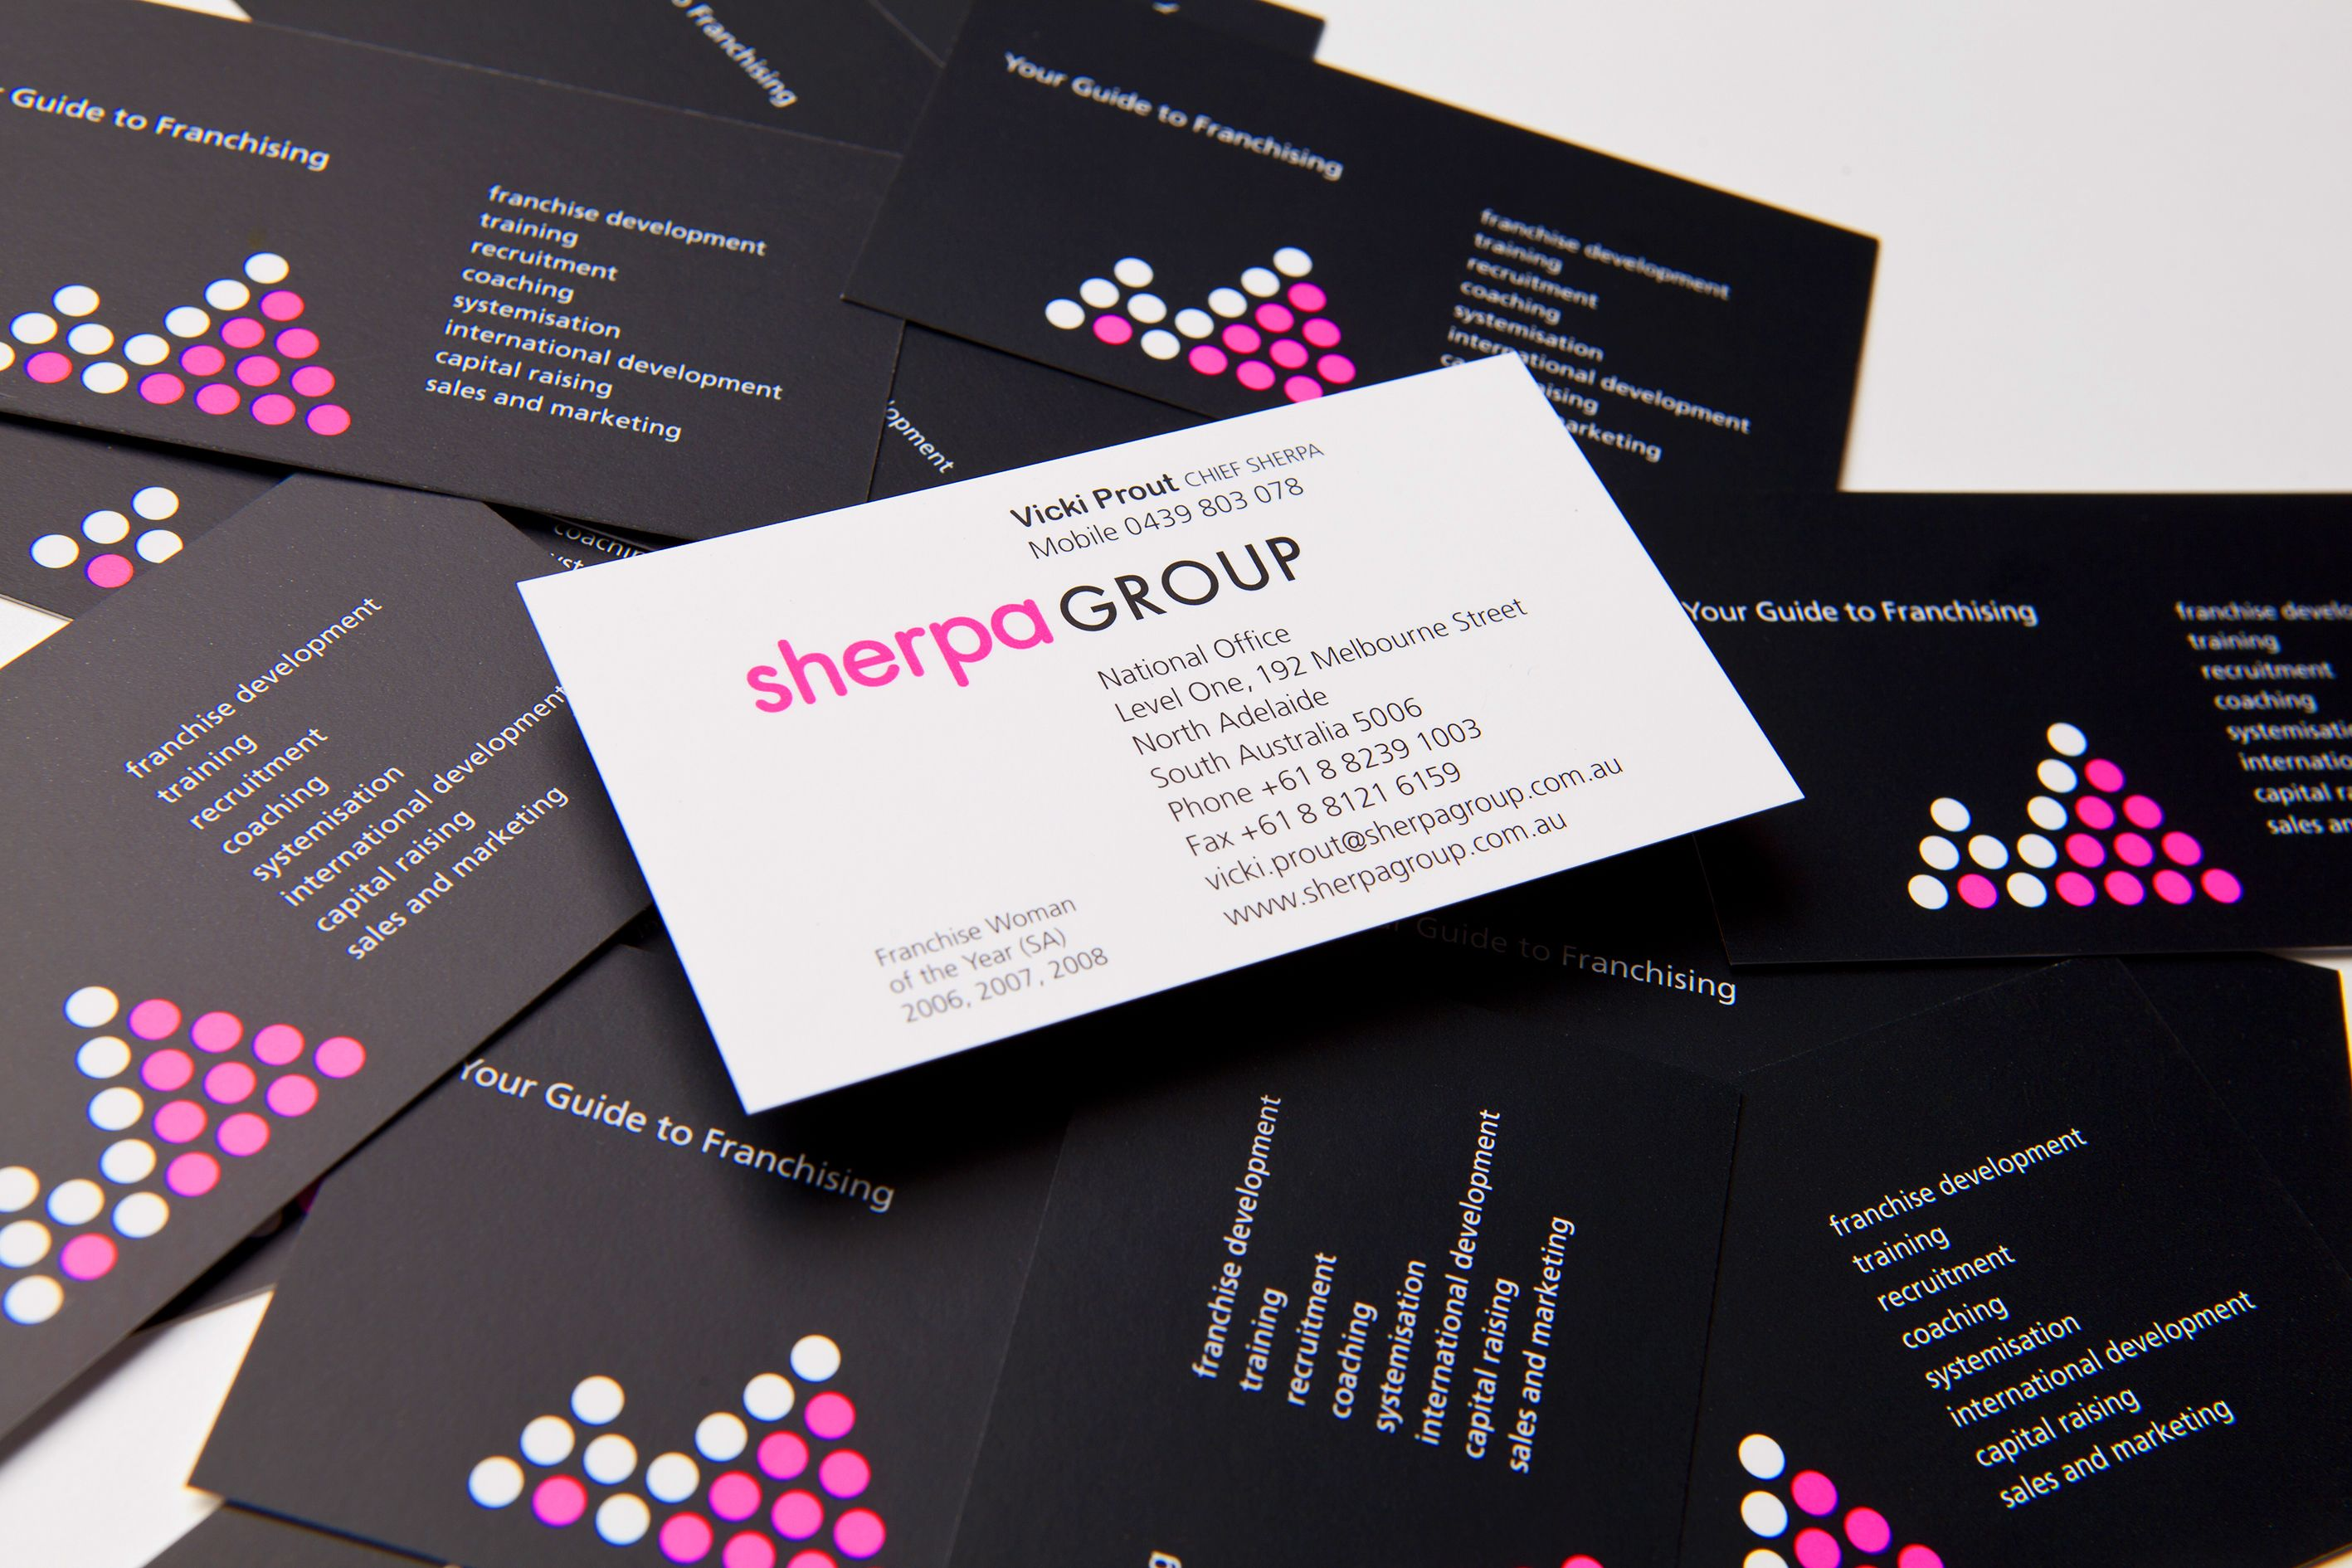 Sherpa Business Card | Toolbox folio | Pinterest | Toolbox and ...